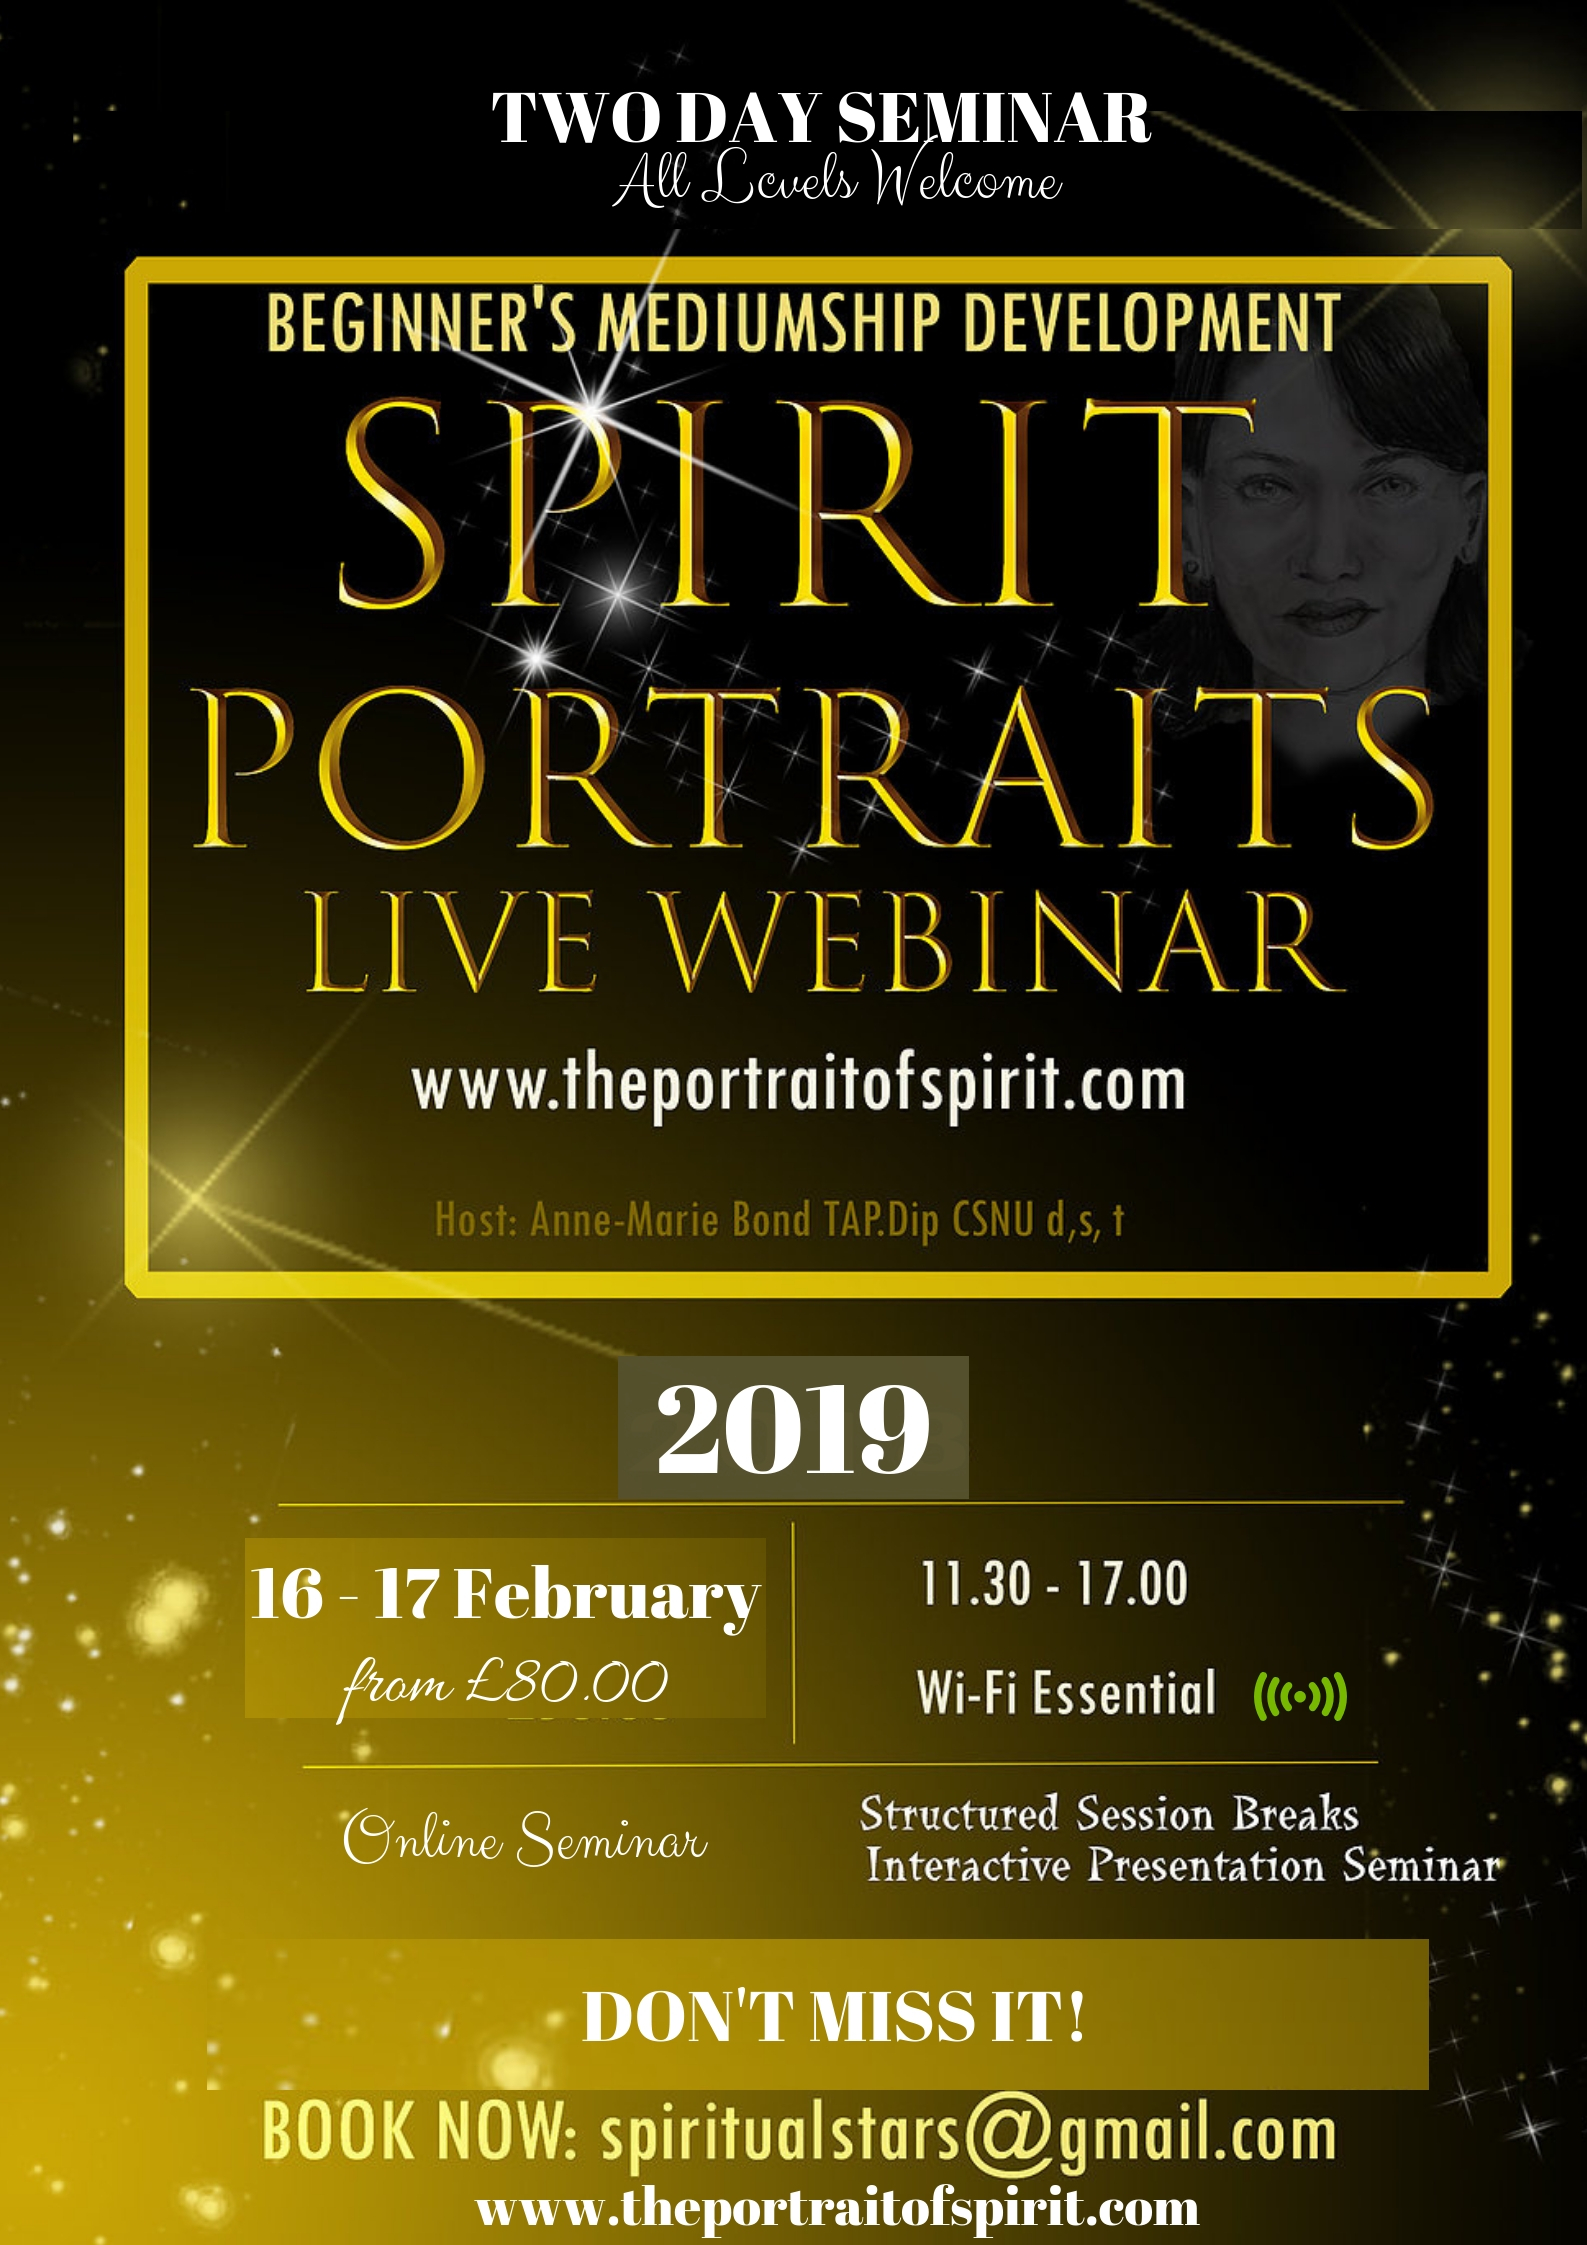 Spirit Art 2Day Seminar 2019